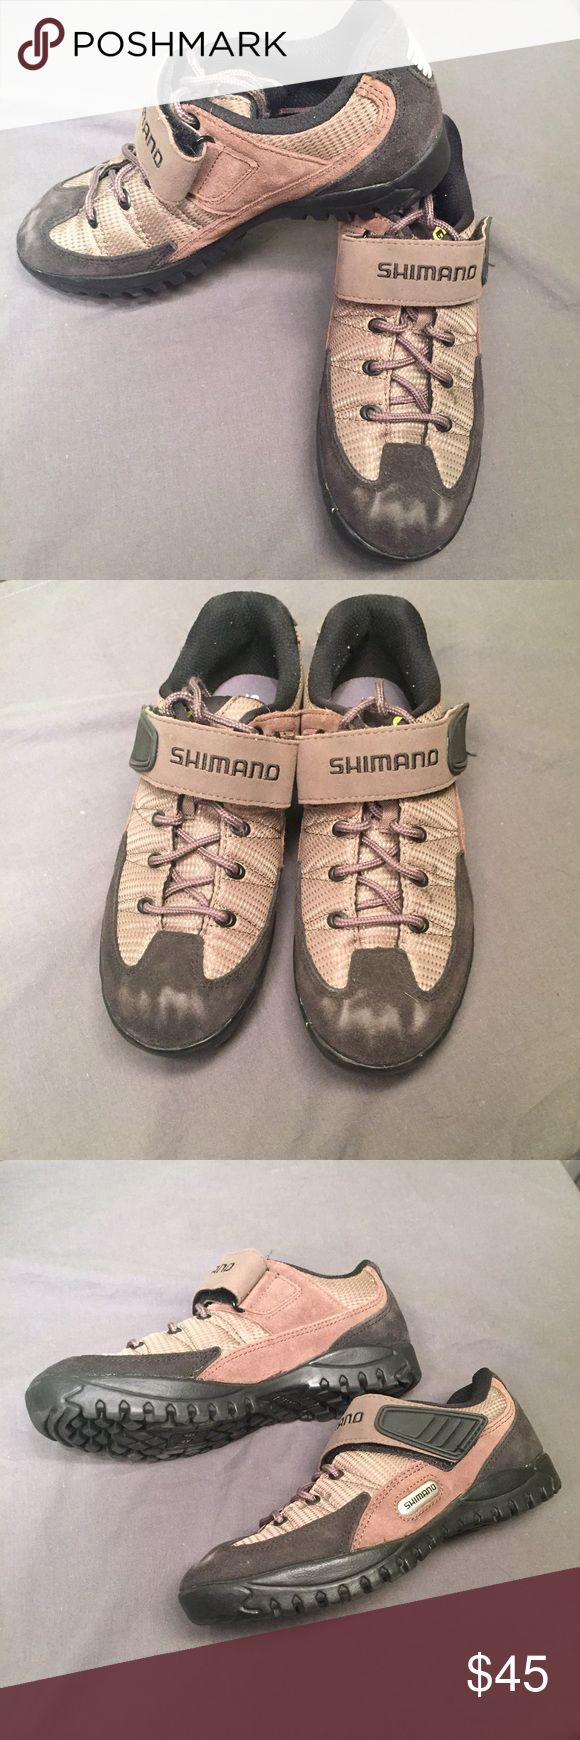 Shimano Bike Shoes Used in good condition! Only wear is on the toes of these shoes. Size 6. Color is Black and Tan Shimano Shoes Athletic Shoes